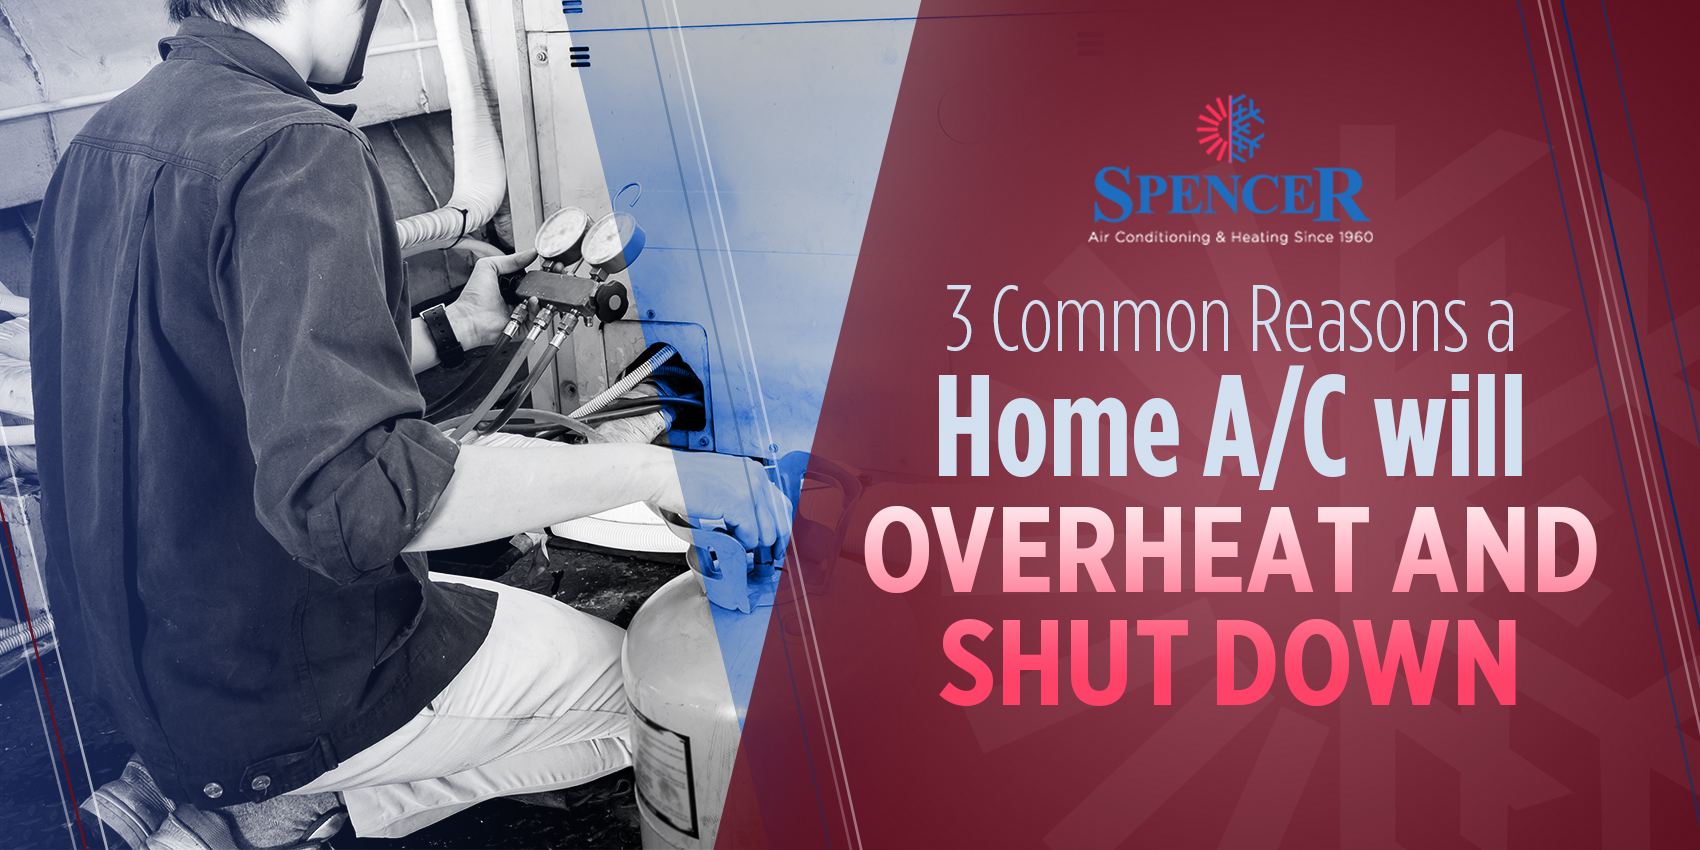 3 Common Reasons a Home A/C Will Overheat and Shut Down